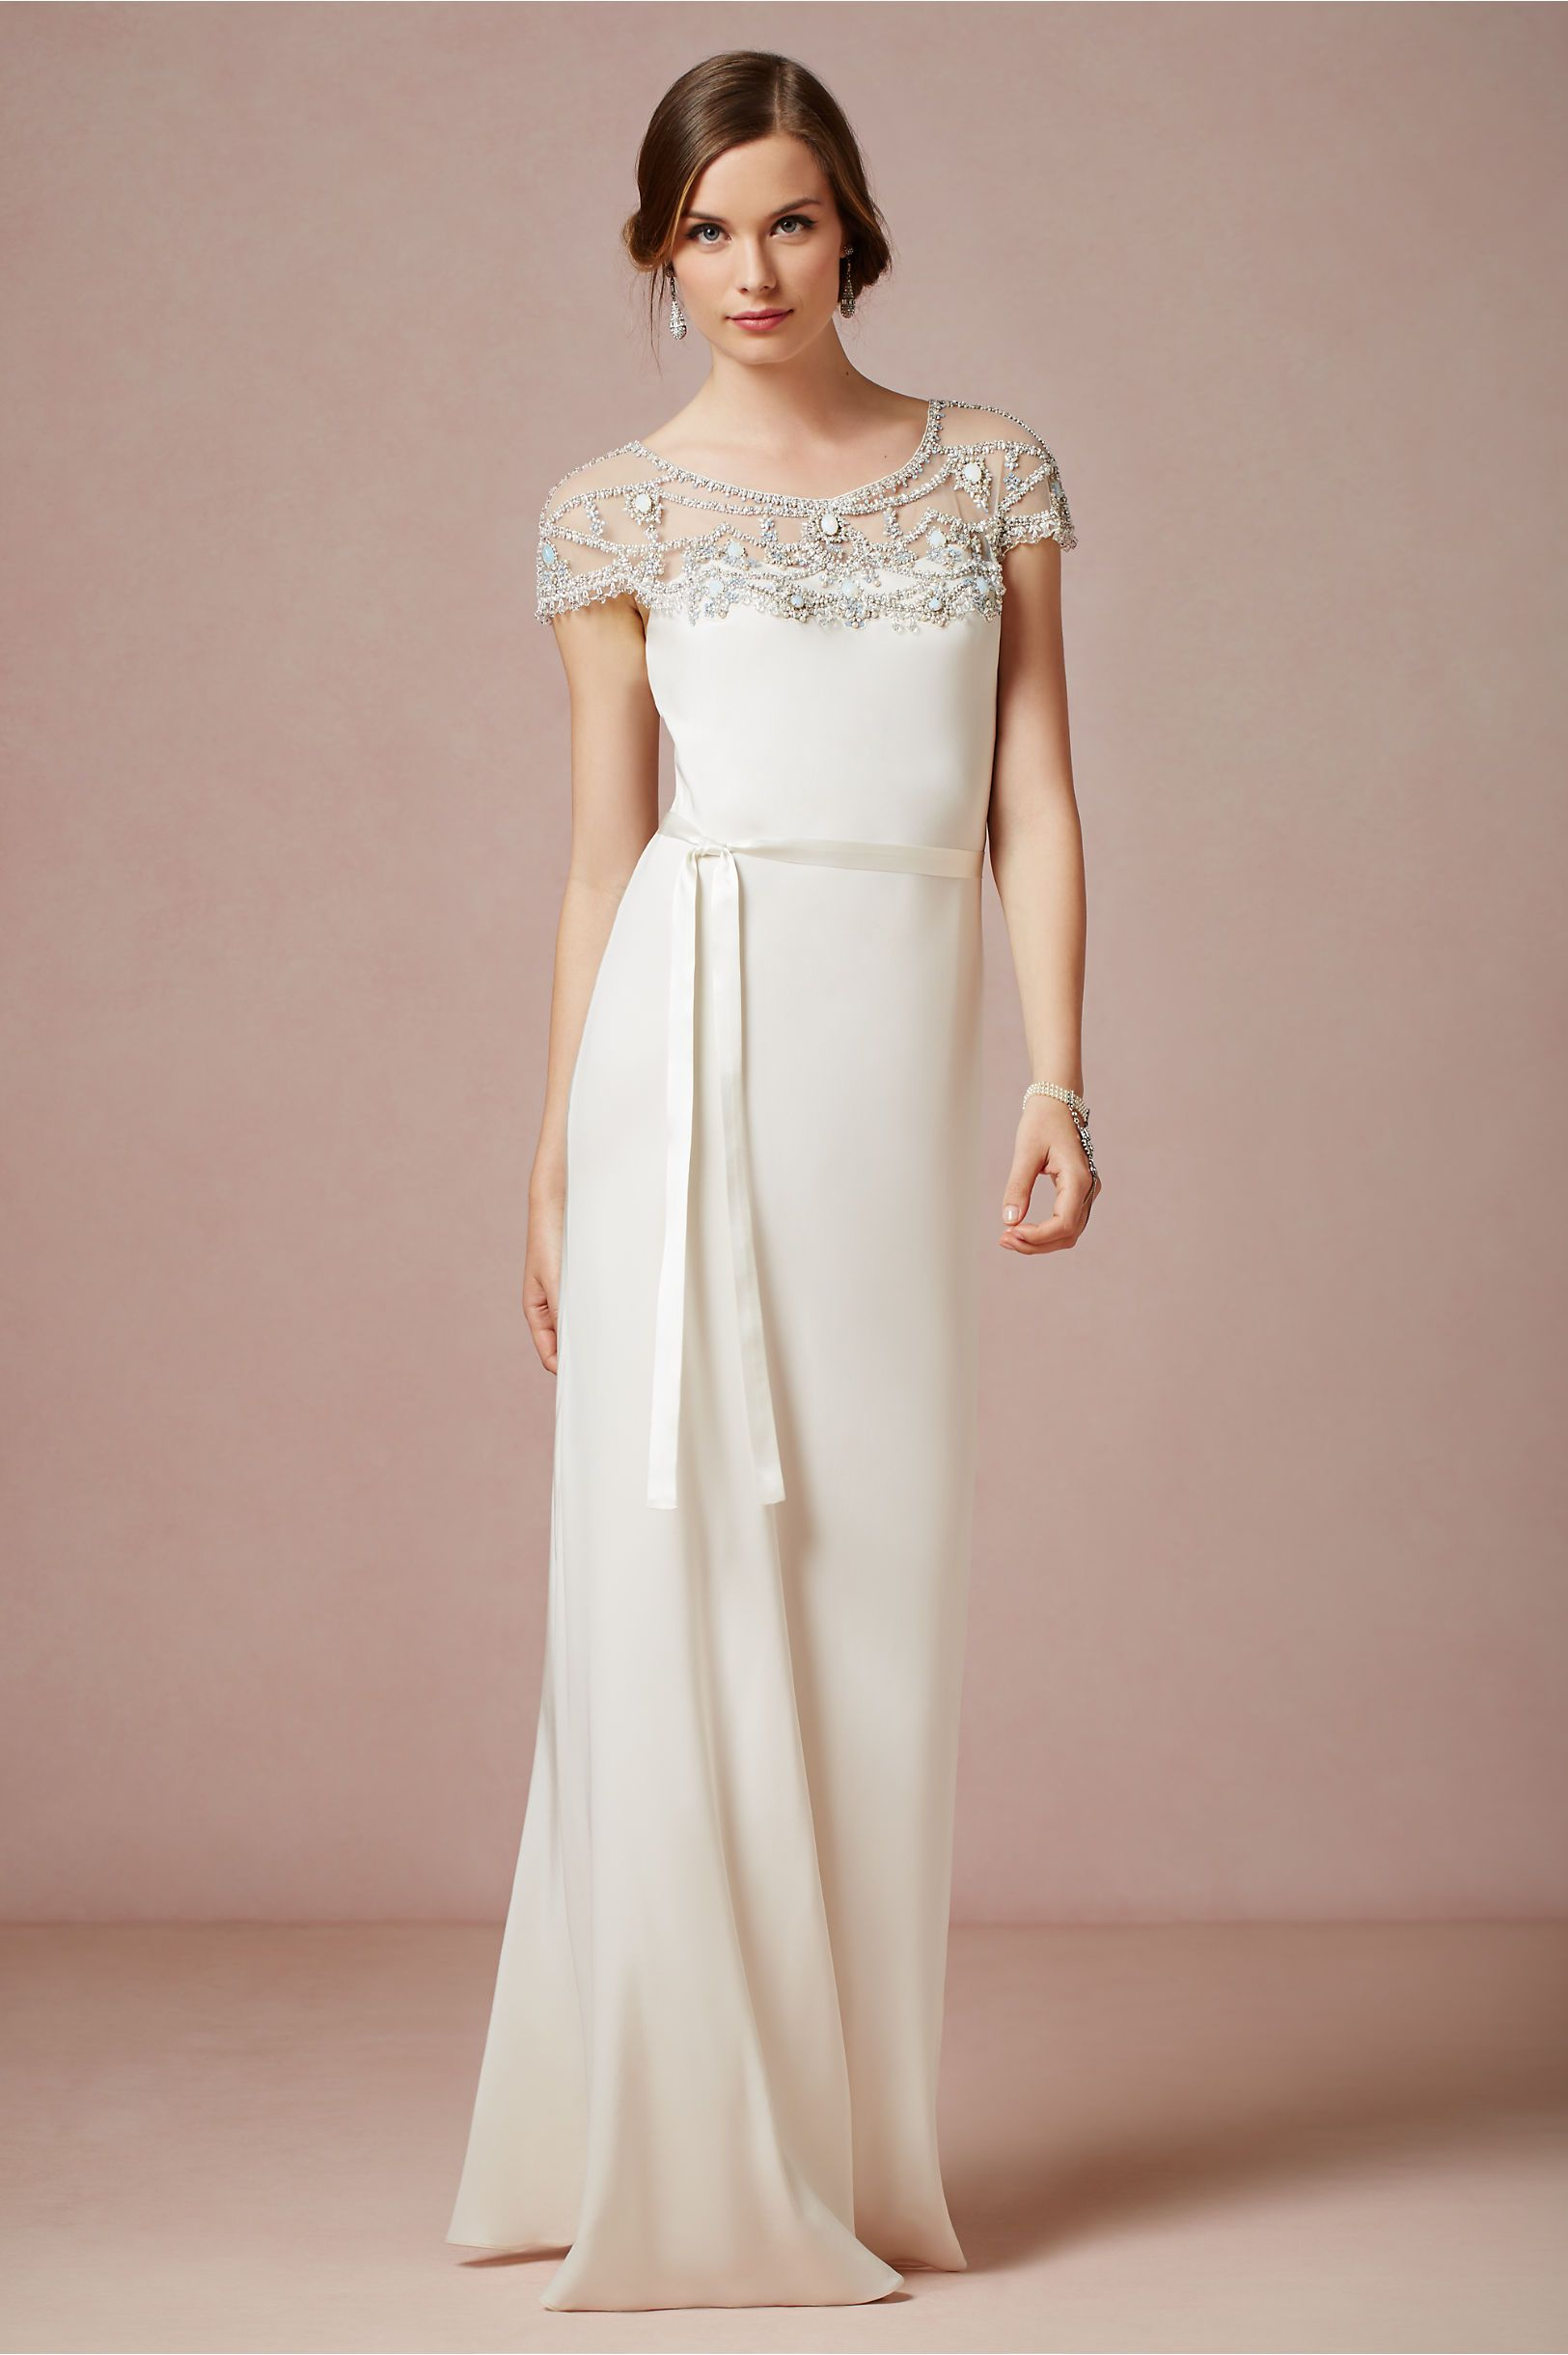 Harlow Gown BHLDN $1600.00 :: 1920s Art Deco Great Gatsby wedding ...